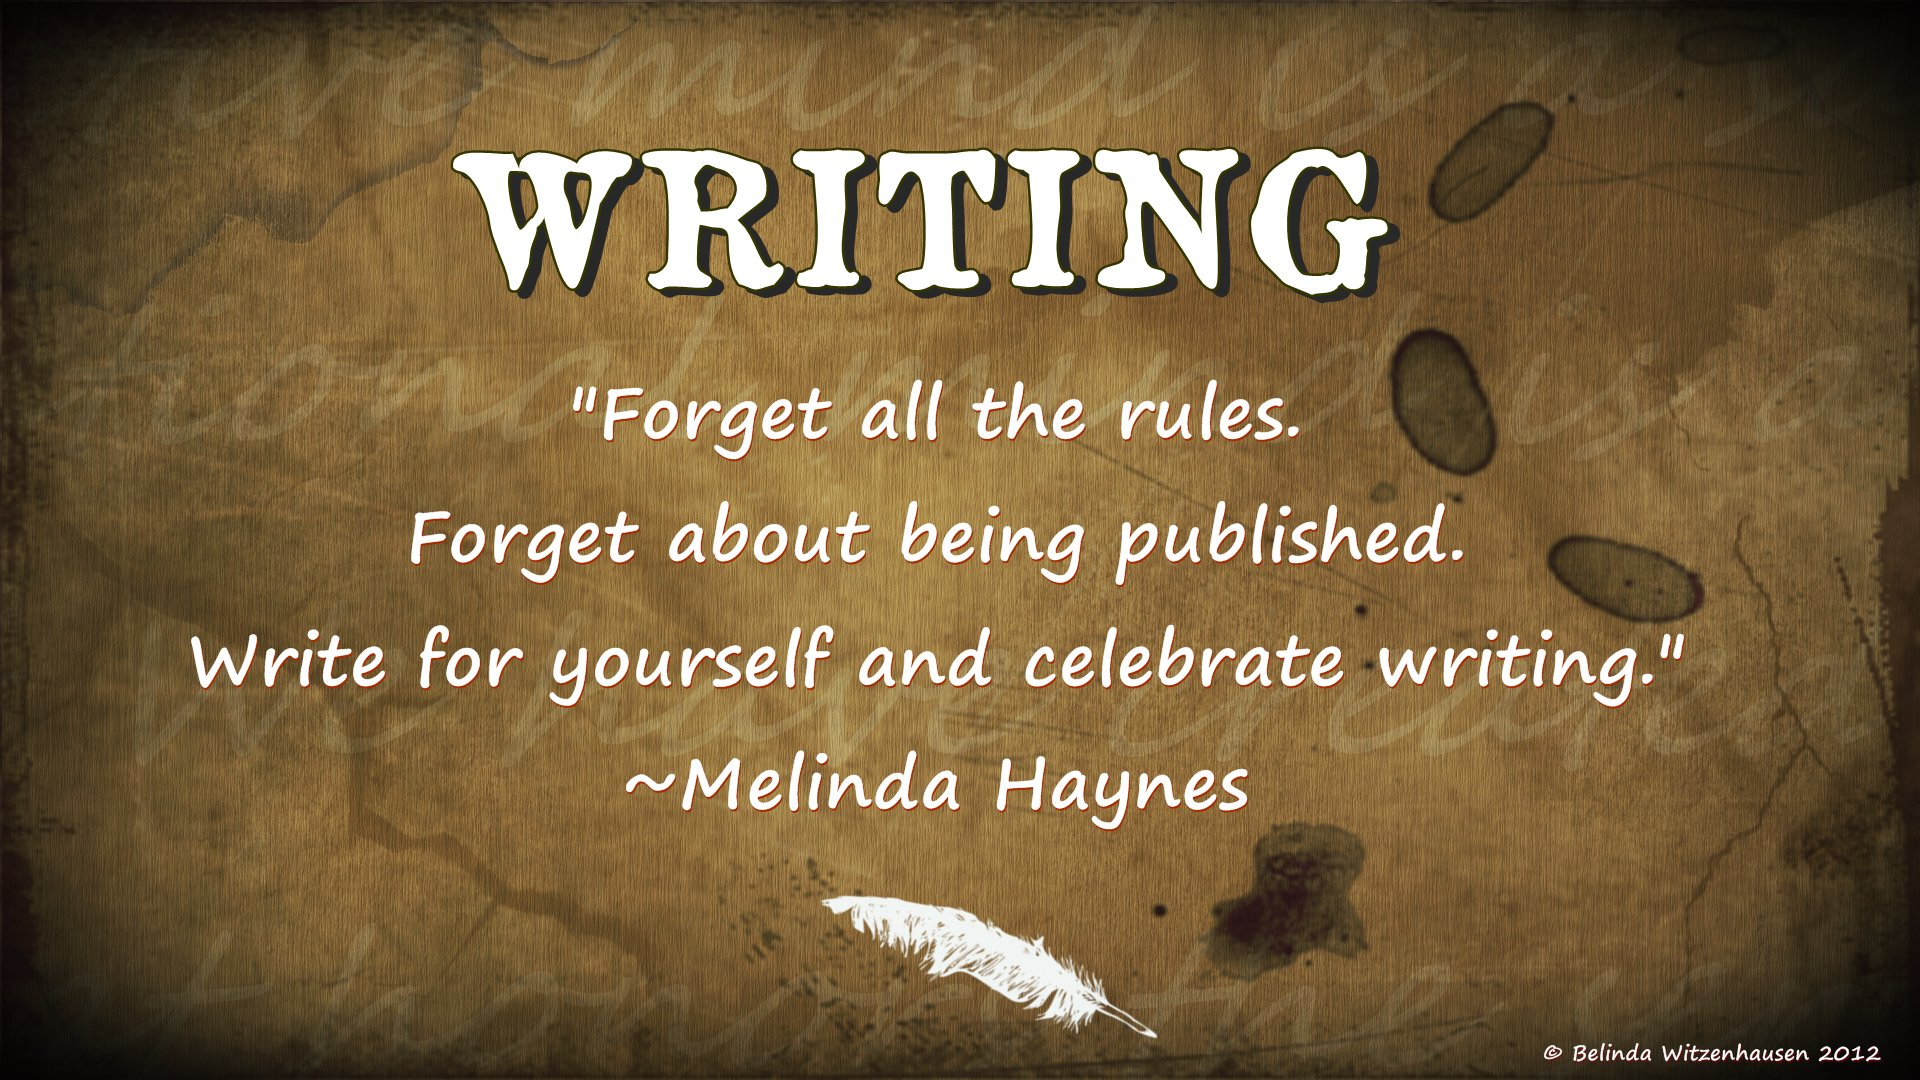 Yes! Write in the moment. Write without worry about all that other stuff. Write for yourself and celebrate you. #amwriting https://t.co/TwhAwQnXd5